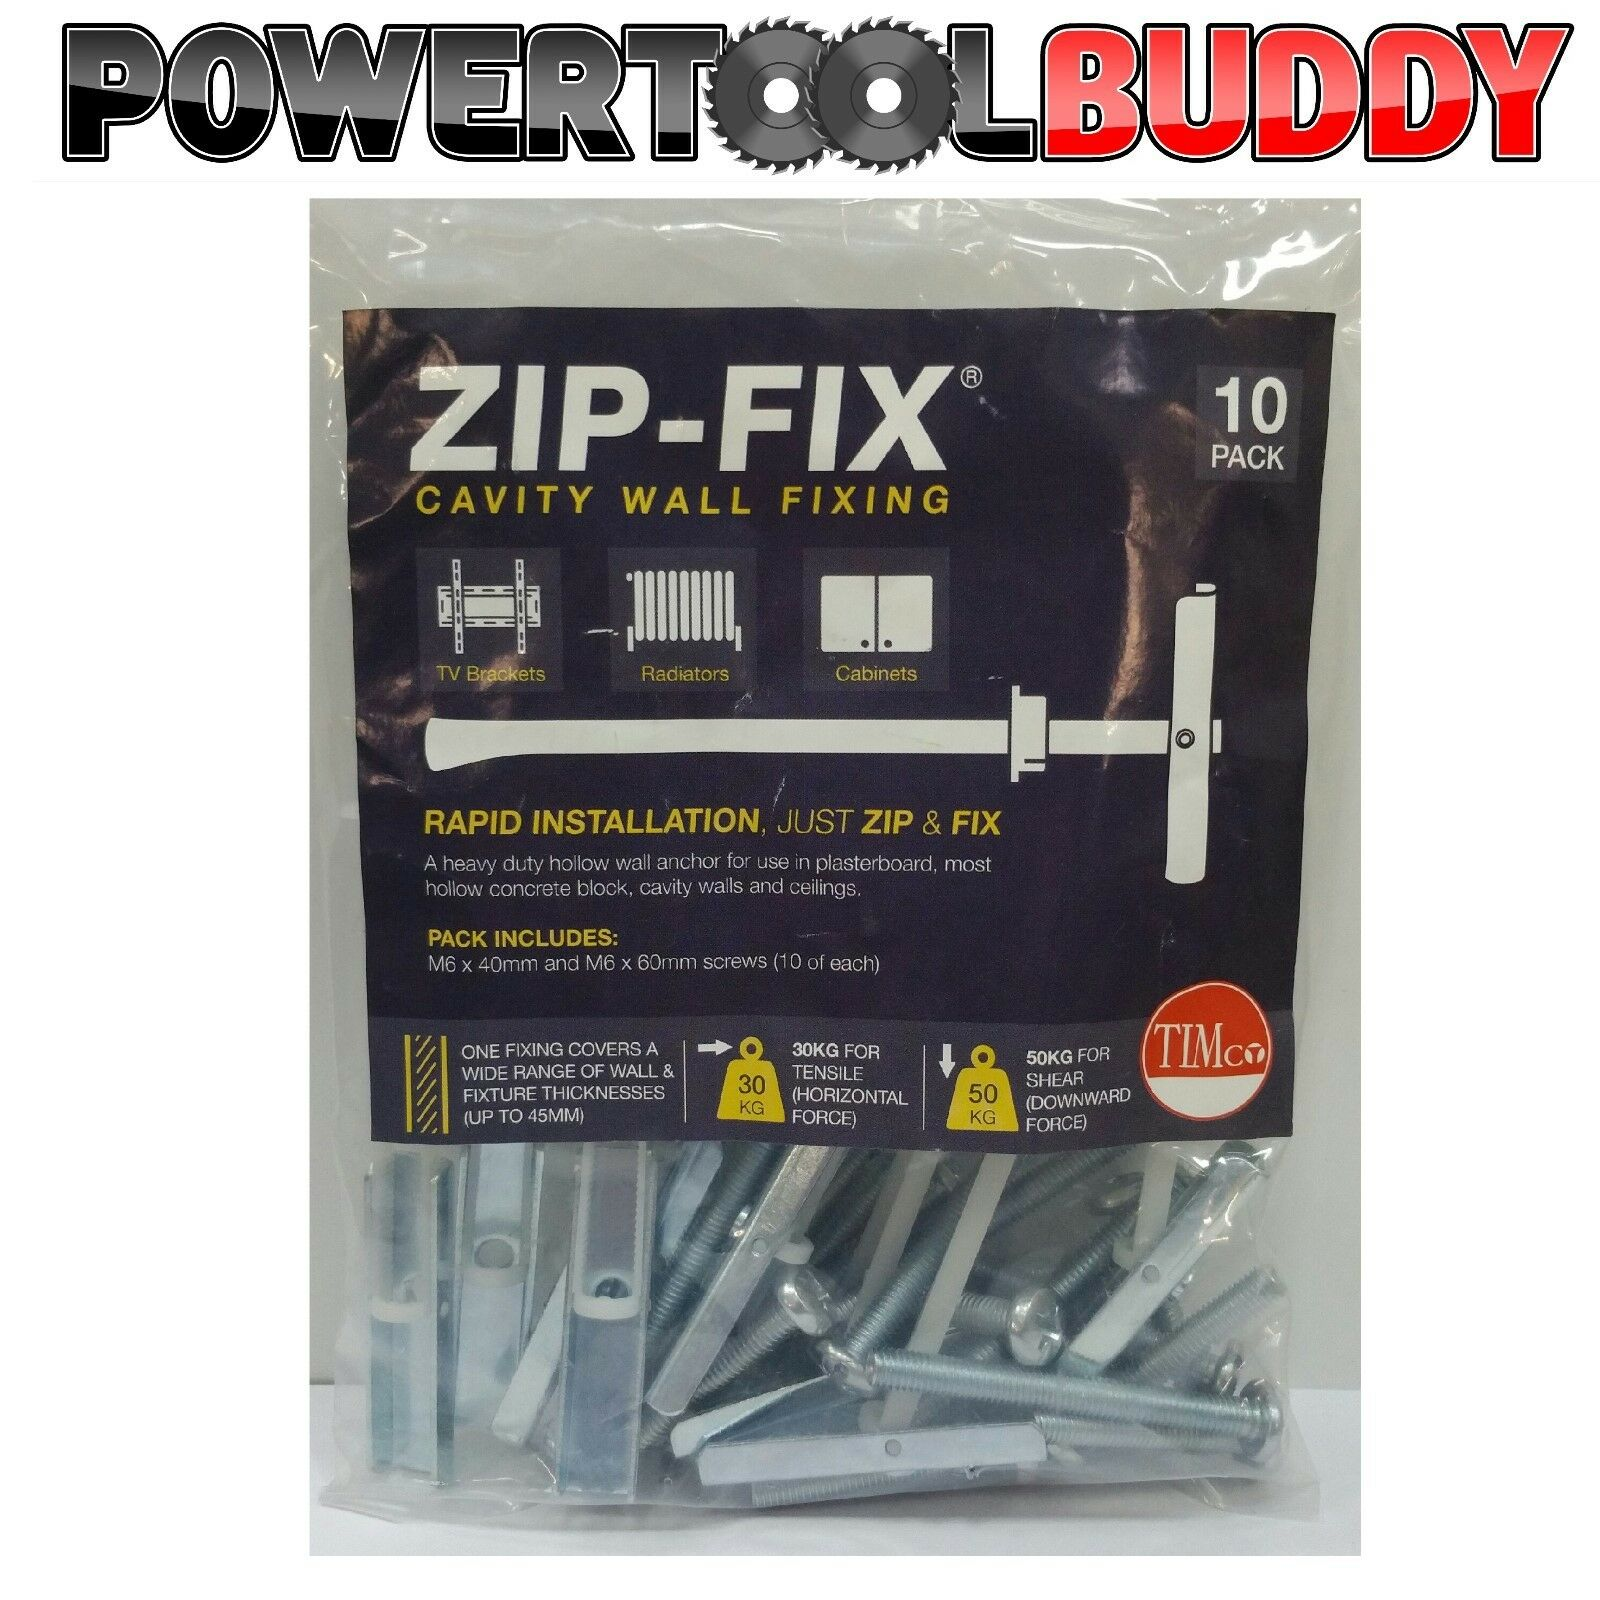 GENUINE M5 TOGGLER HEAVY DUTY  PLASTERBOARD FIXING TOGGLER//SNAPTOGGLE